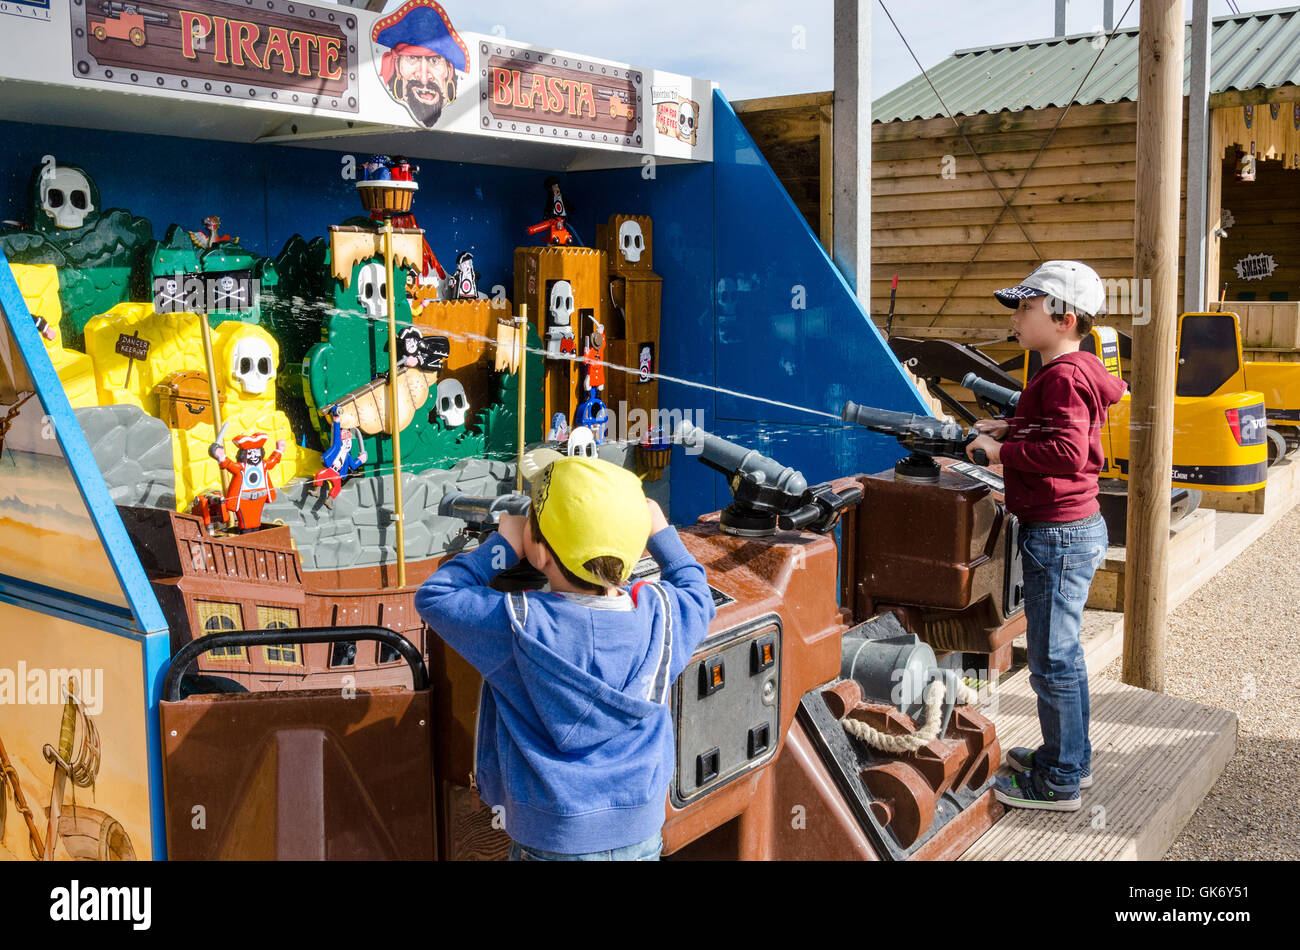 A couple of young brothers play on a water cannon shooting game at the fairground. - Stock Image